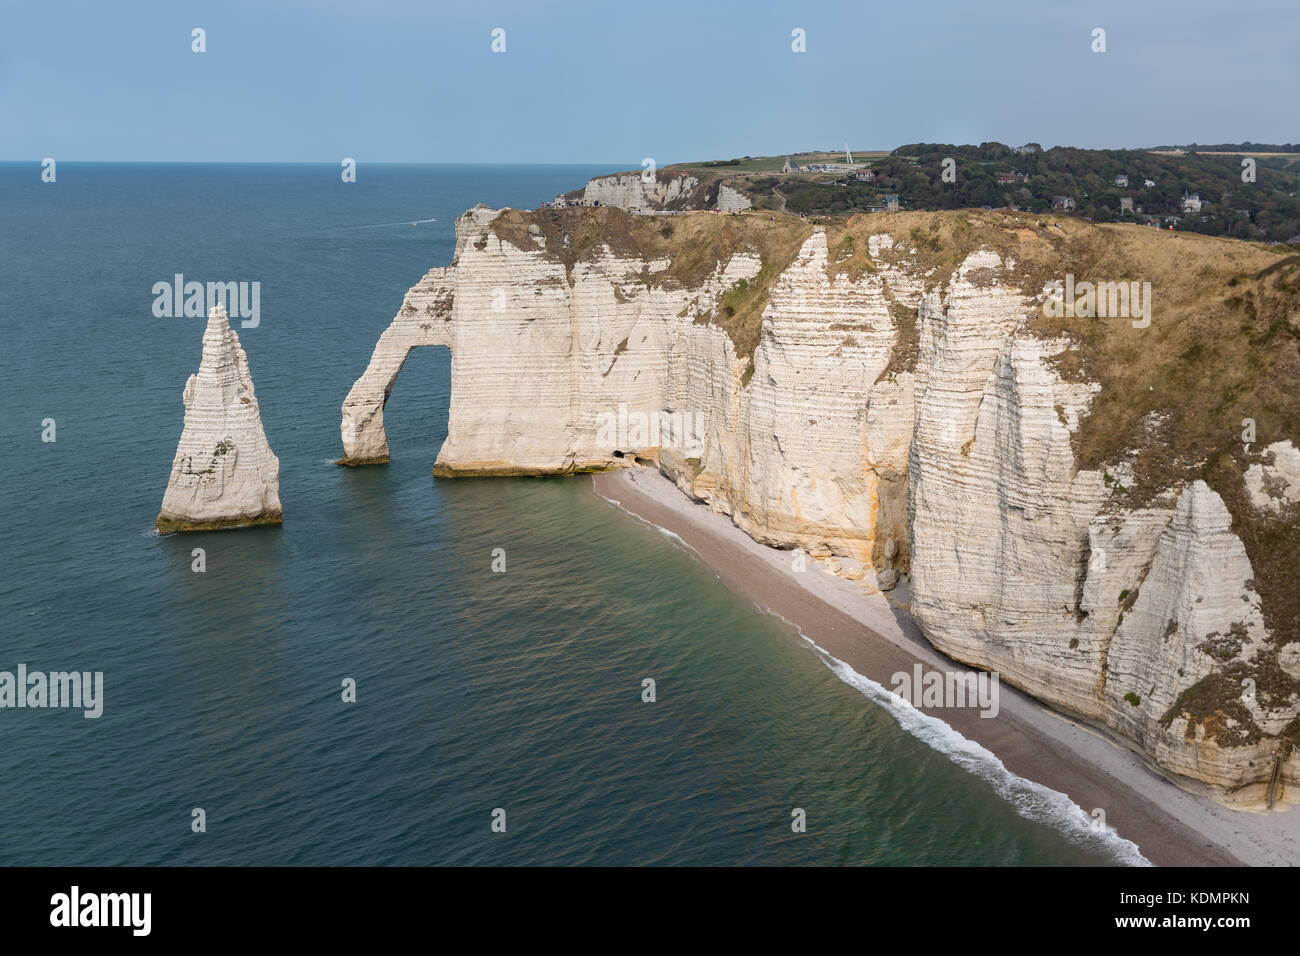 Elephant cliffs with people near Etretat in Normandie, France - Stock Image